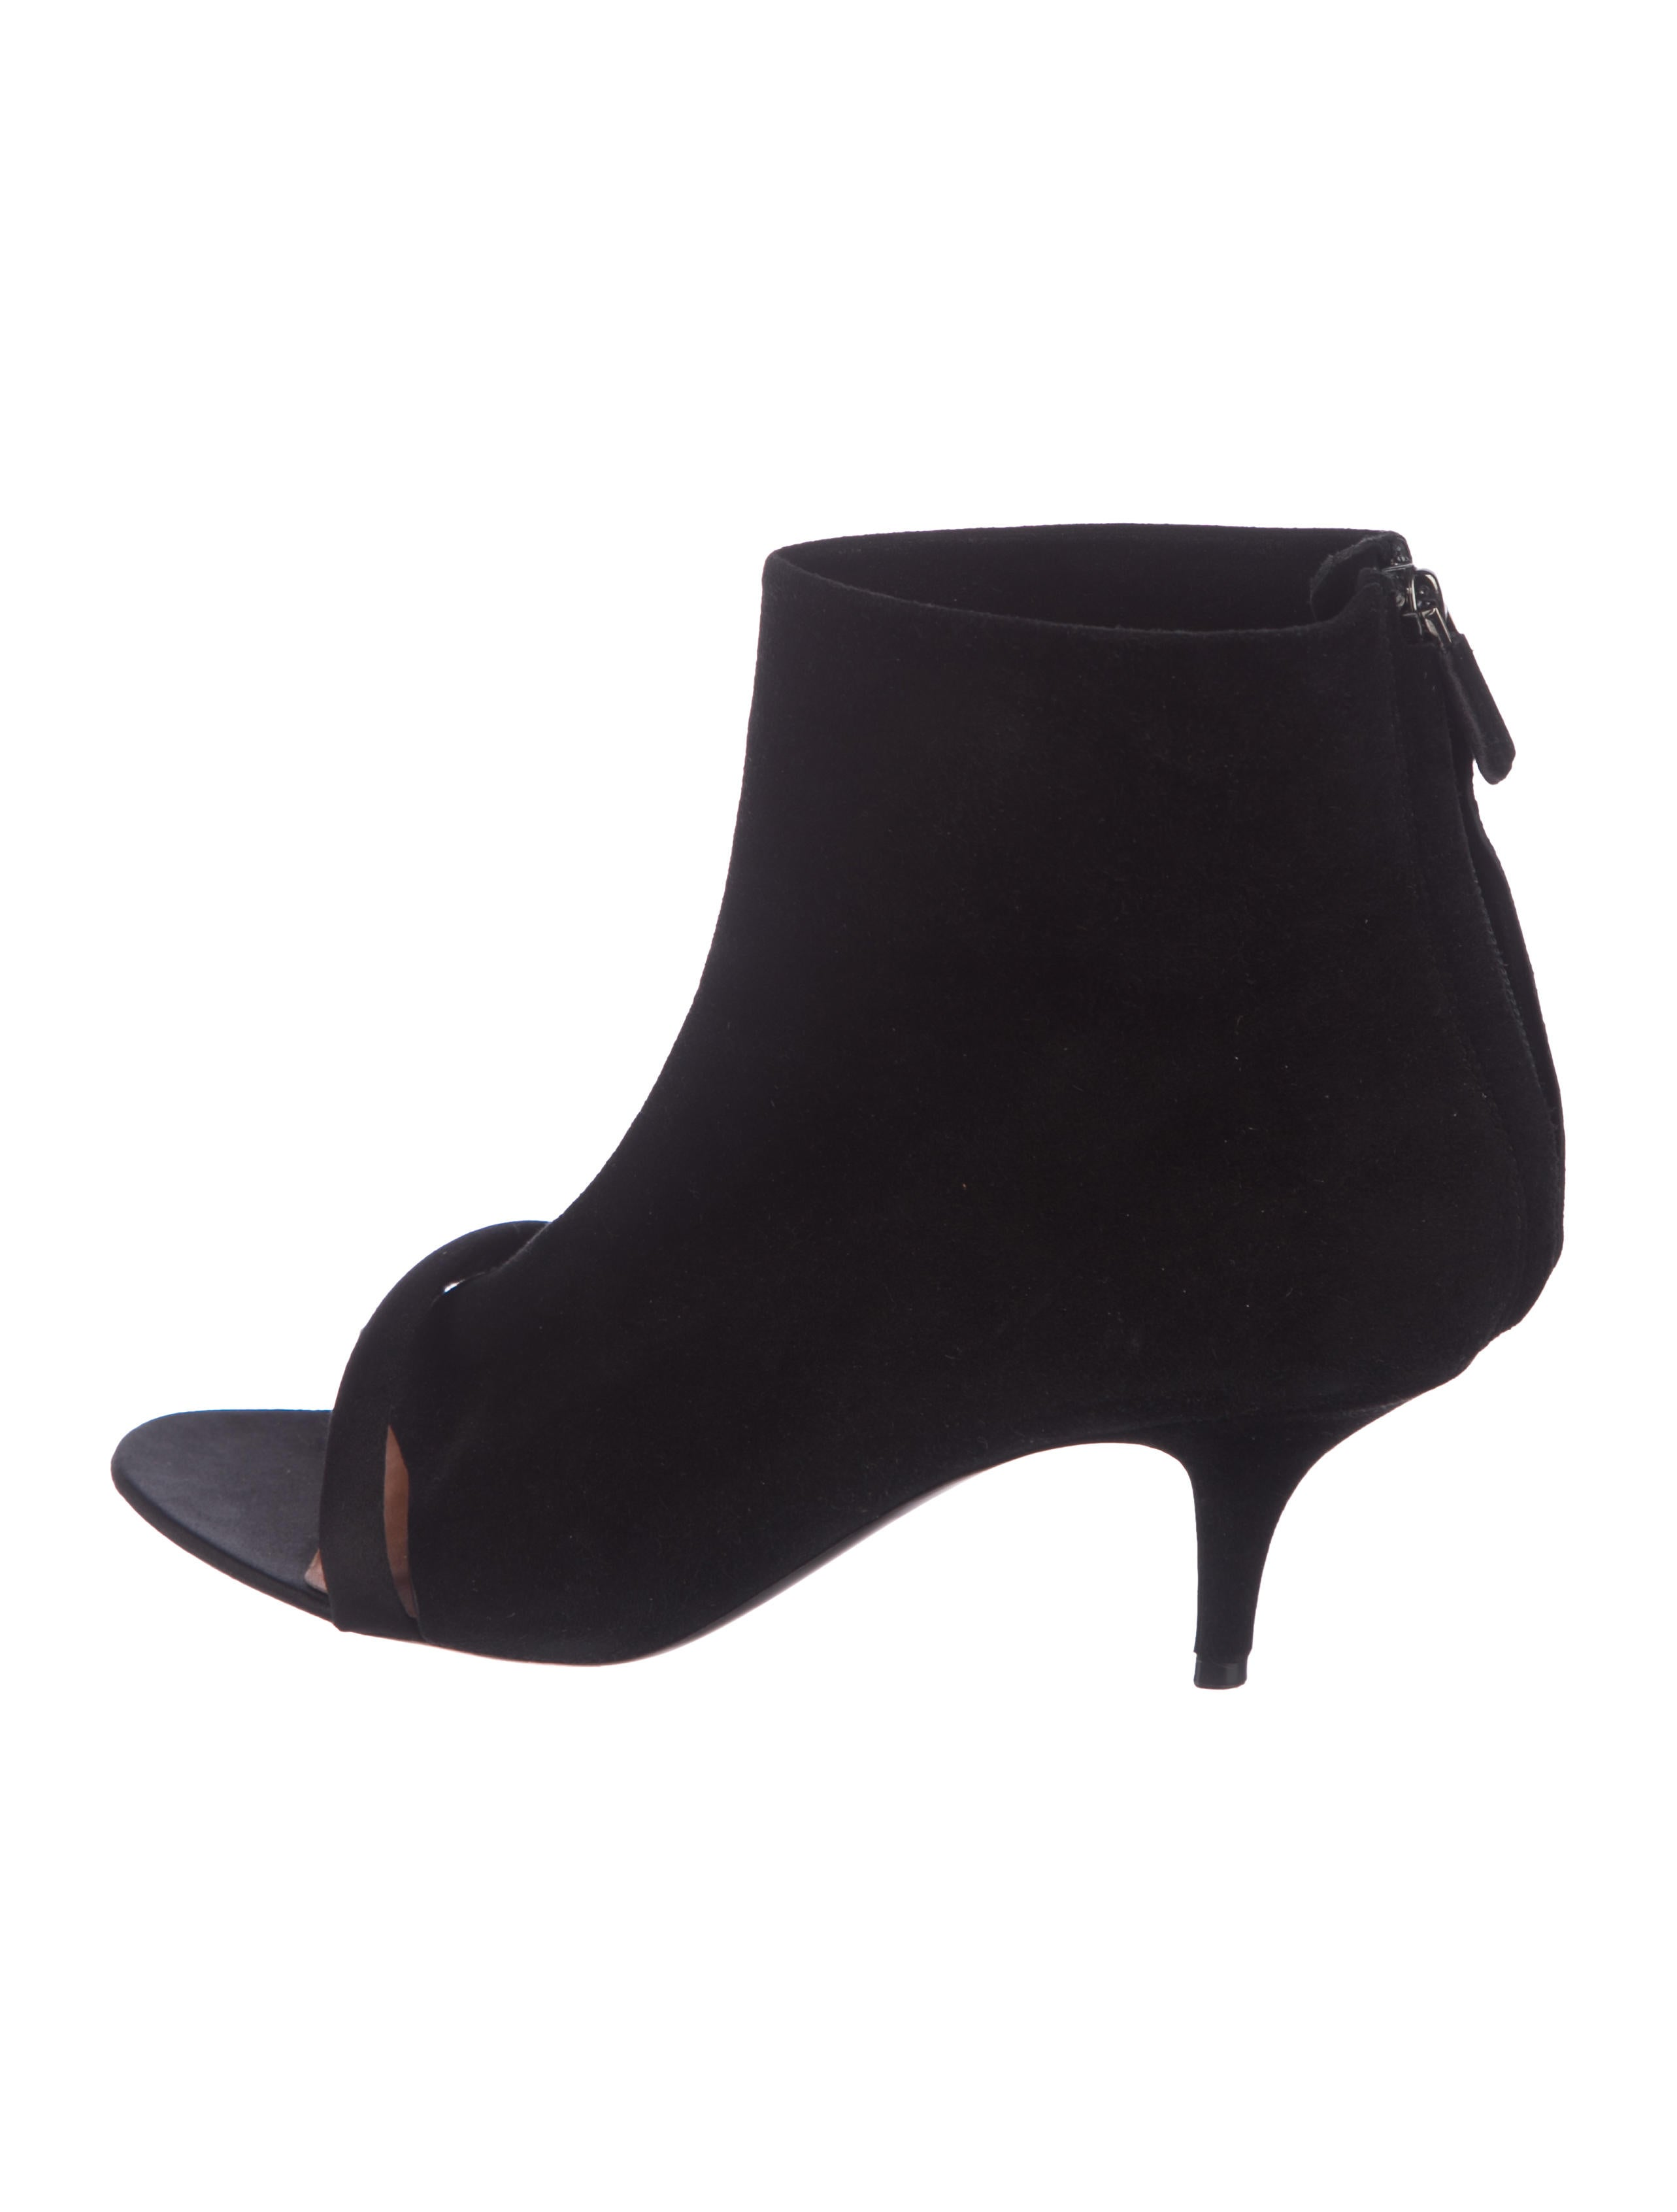 26cfed0a8675 Givenchy Suede Peep-Toe Ankle Booties - Shoes - GIV63067